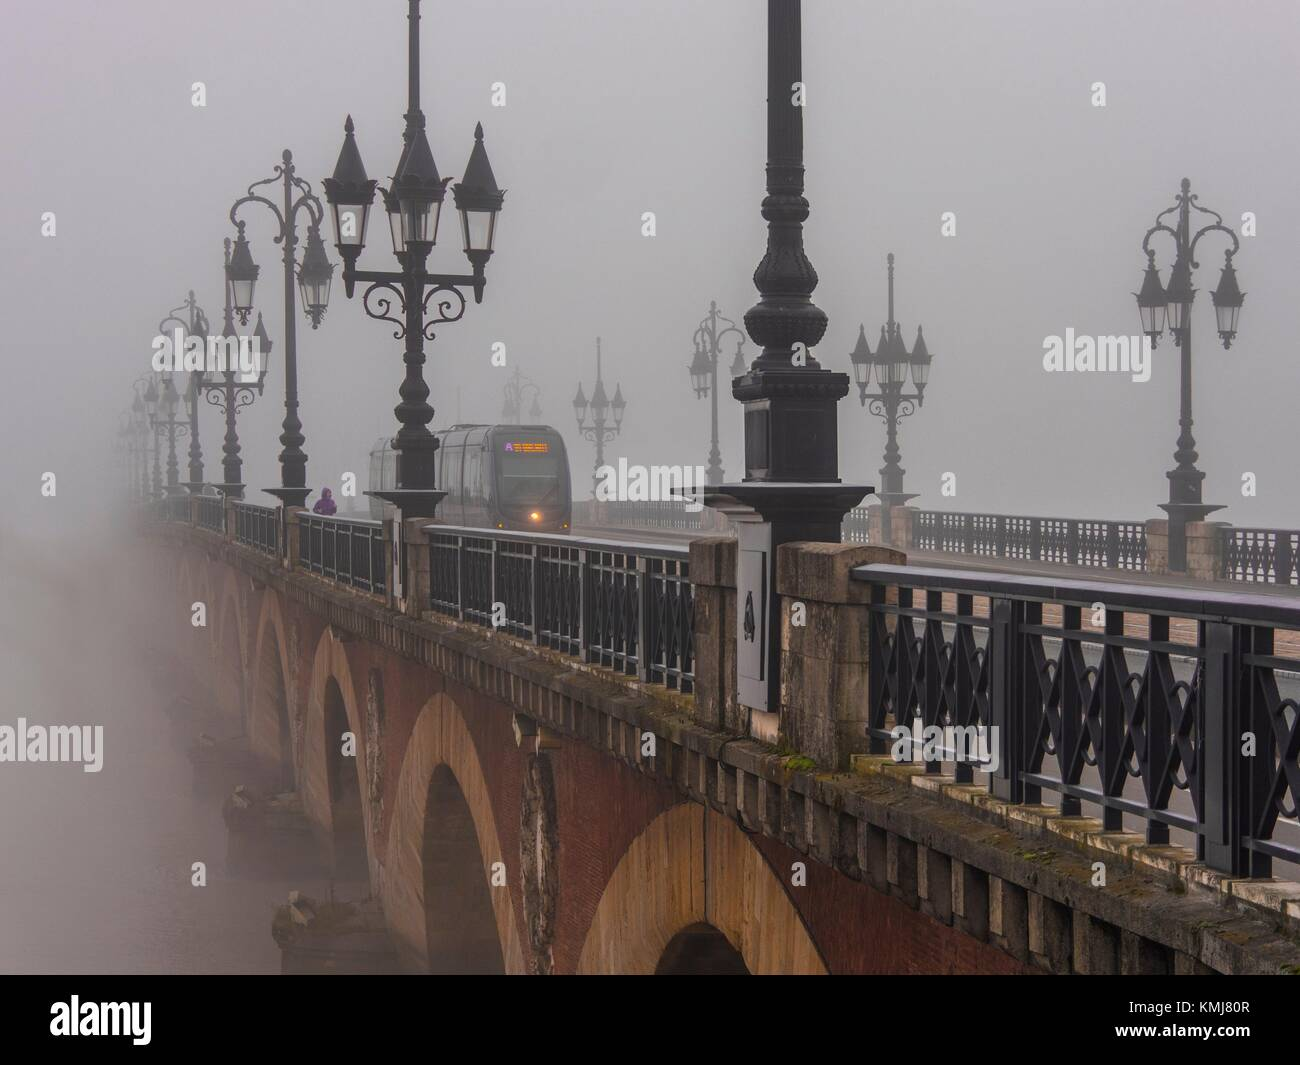 La France. Nouvelle Aquitaine. Gironde. 'Pont de pierre' bridge dans le brouillard, à Bordeaux. Photo Stock